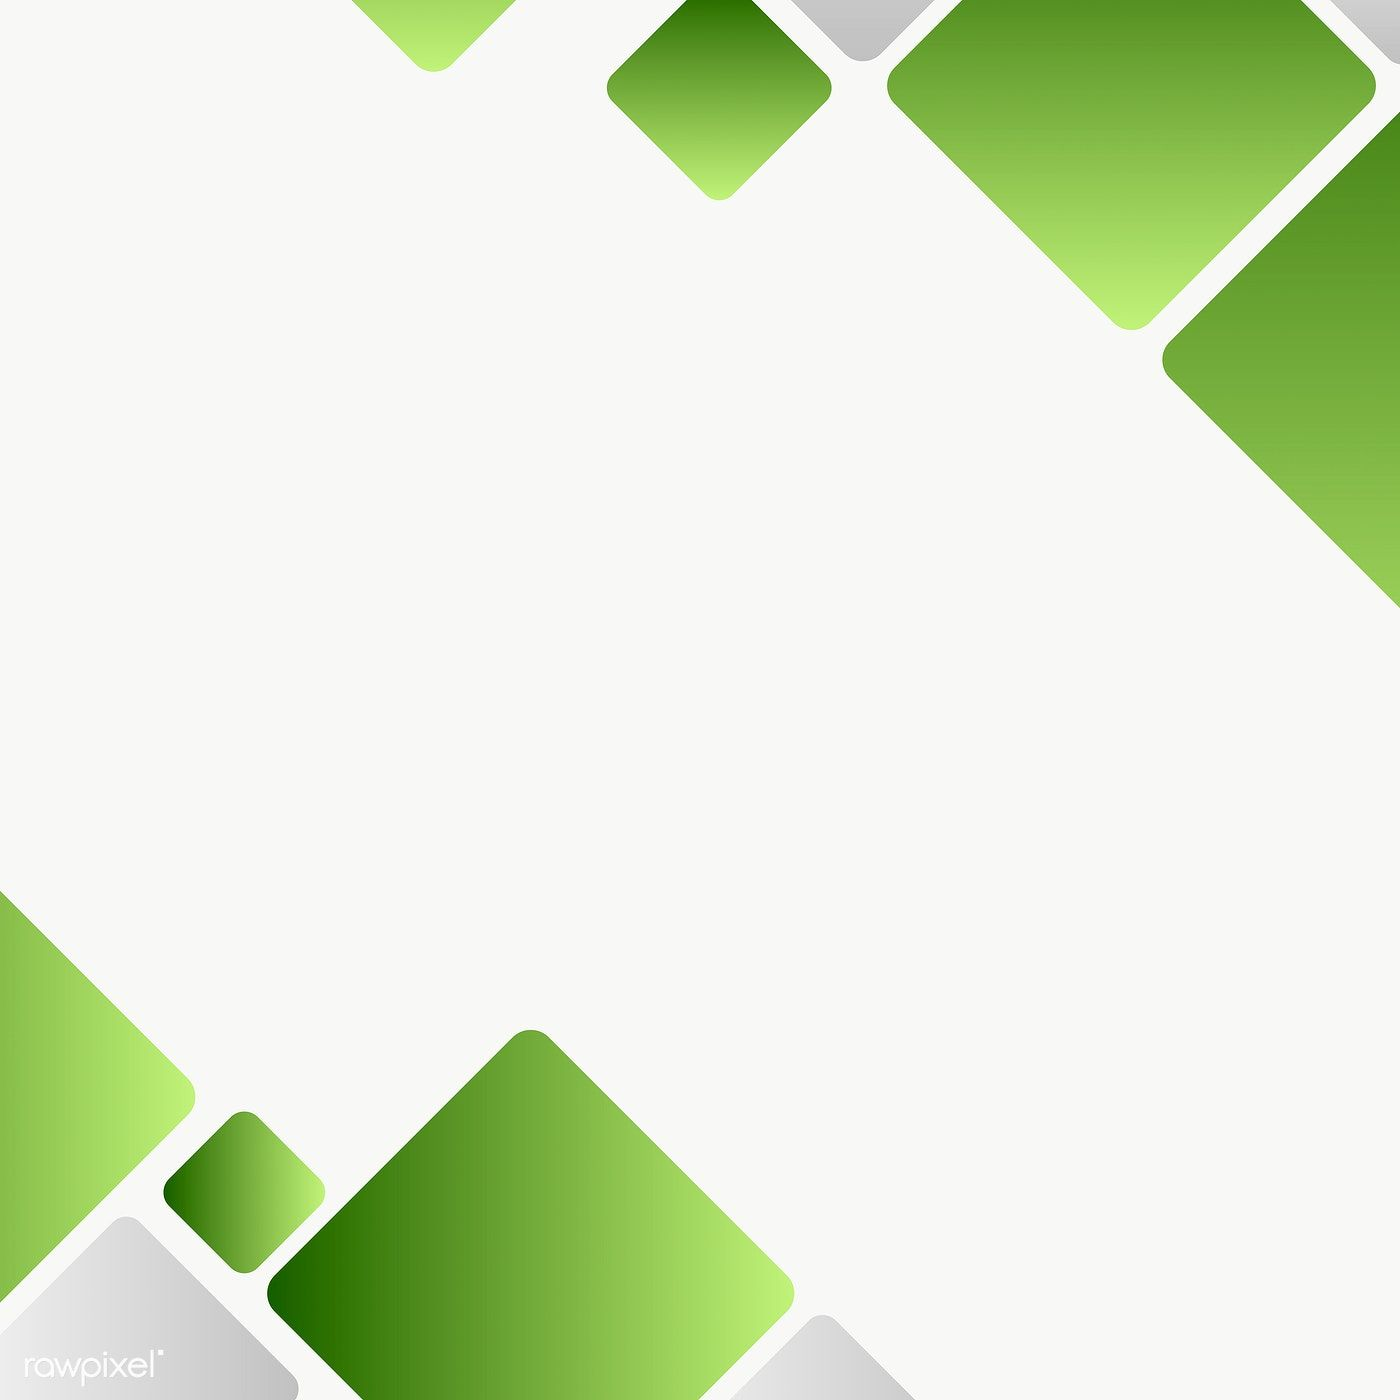 Green Geometric Template Design Element Free Image By Rawpixel Com Mind In 2021 Vector Free Template Design Geometric Background